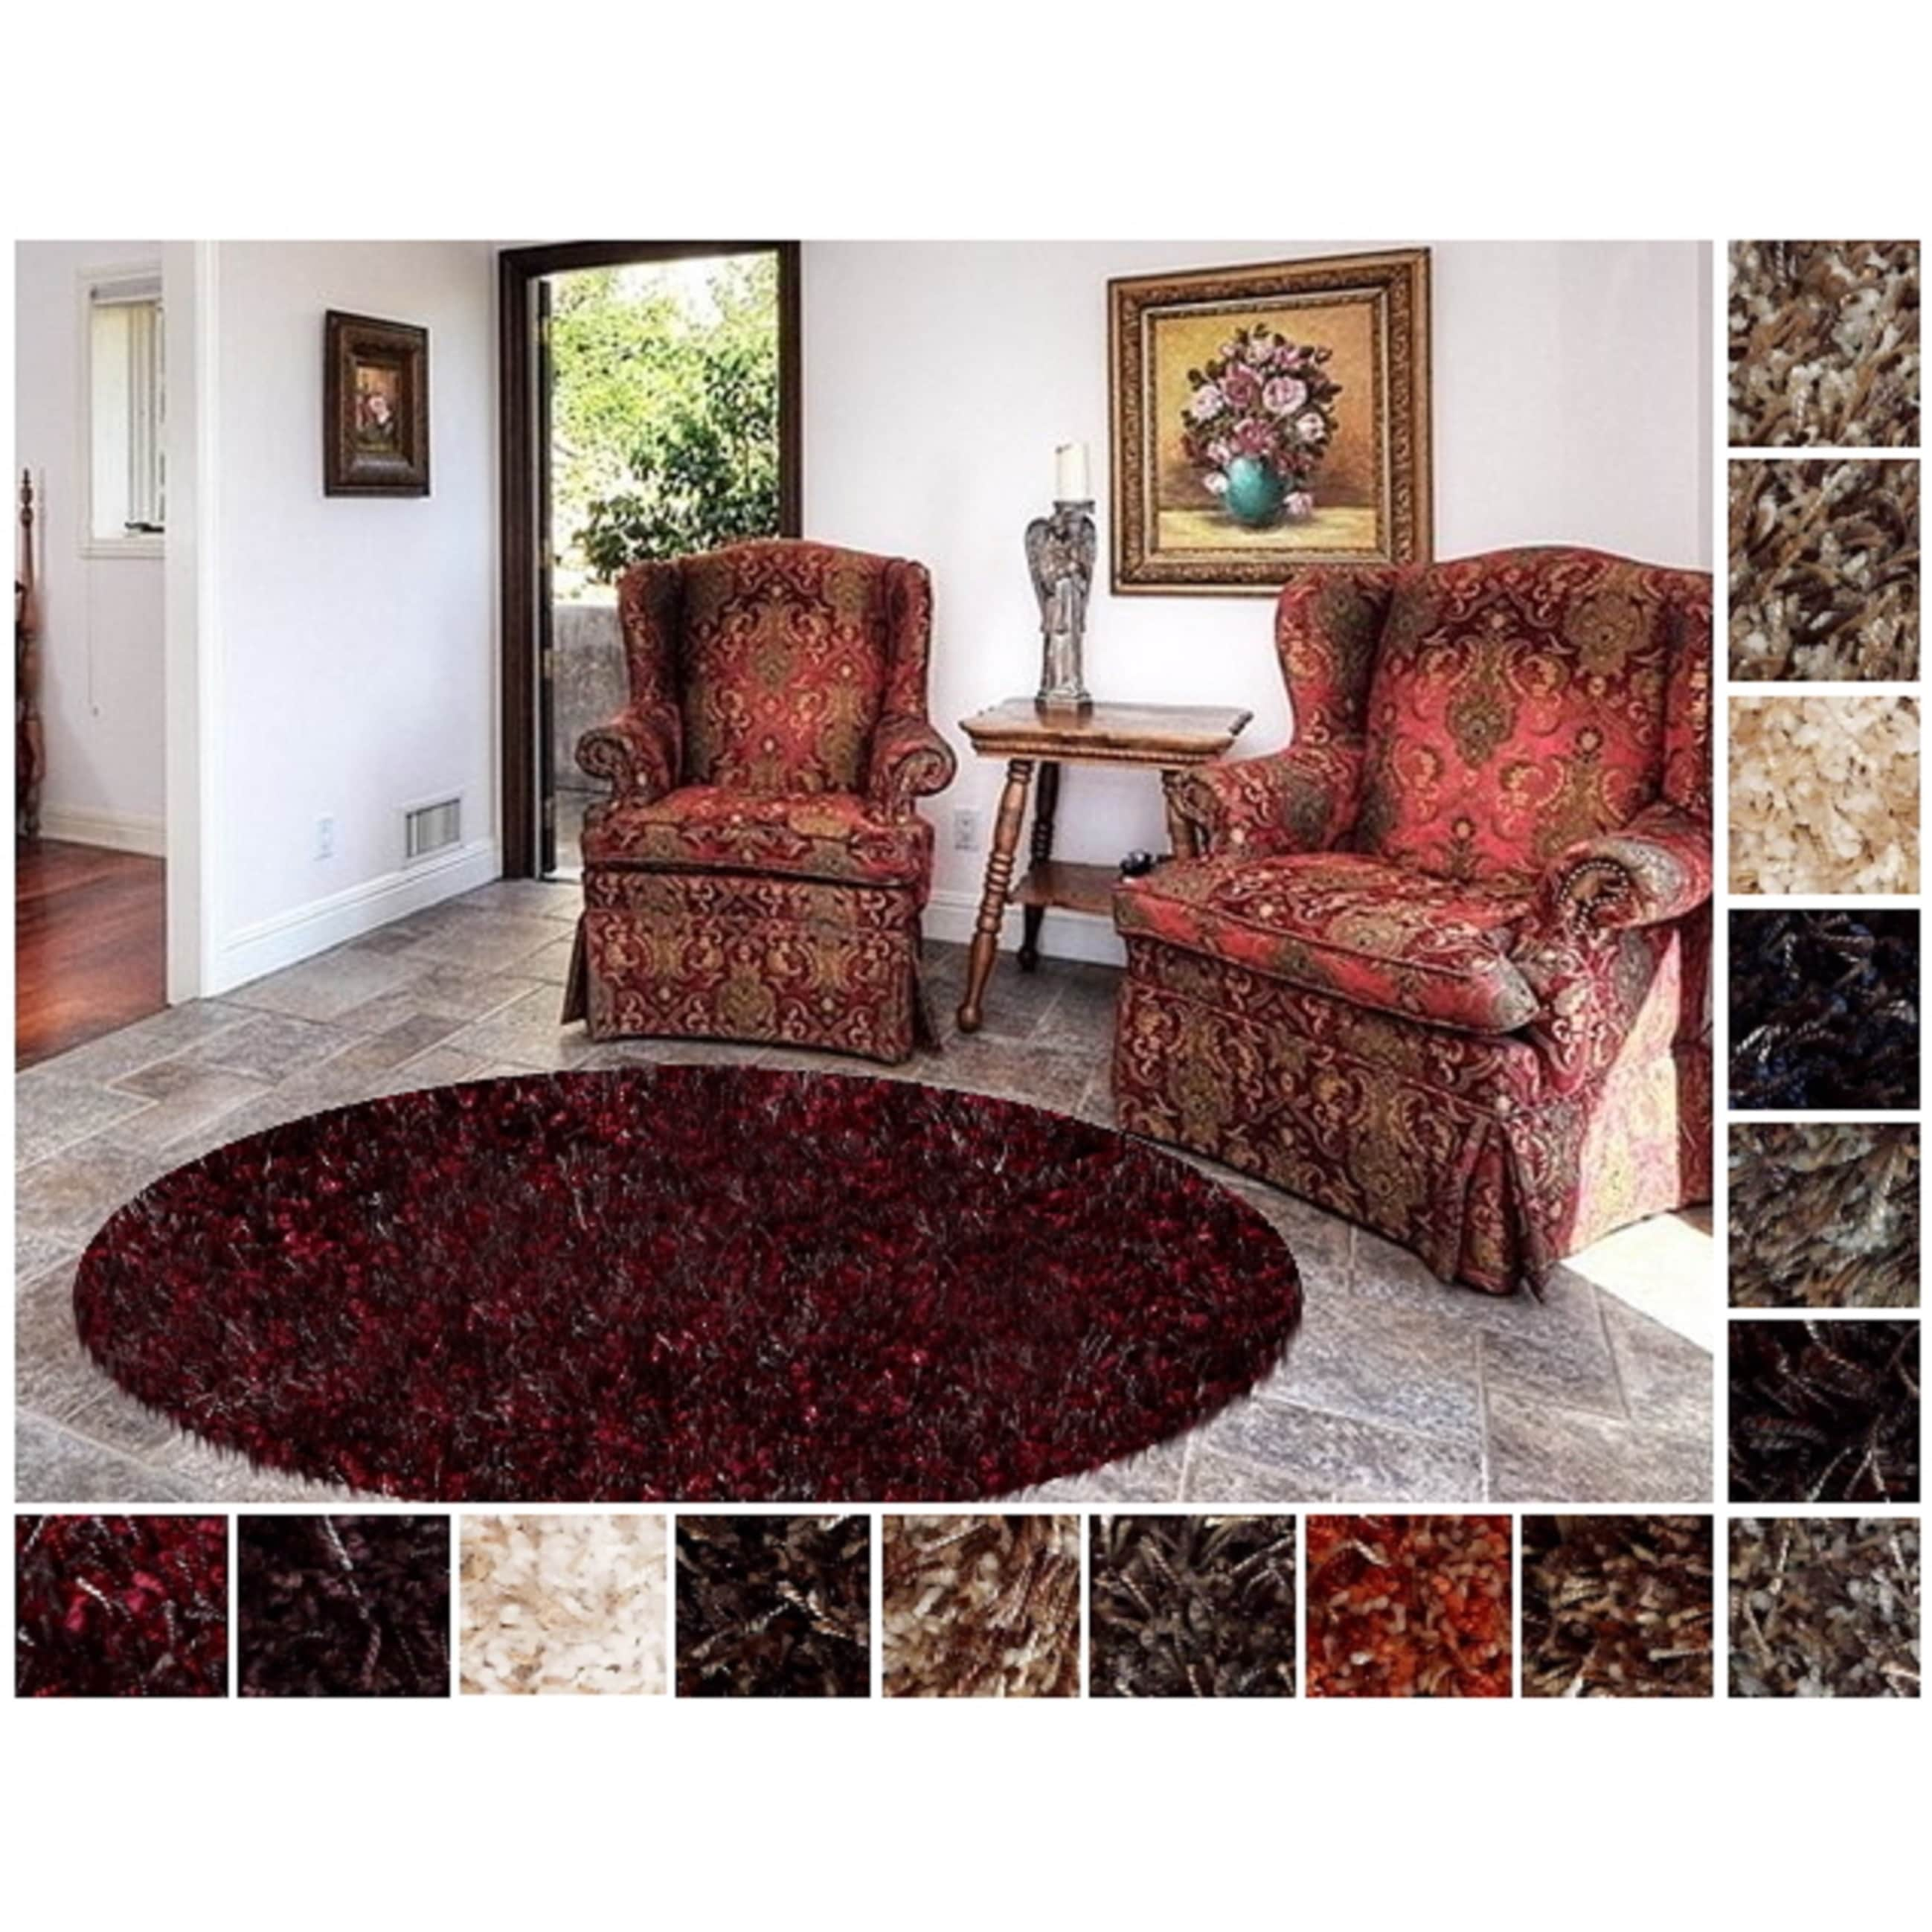 Details About Shaw Swag Luxury Area Rug 6 Round